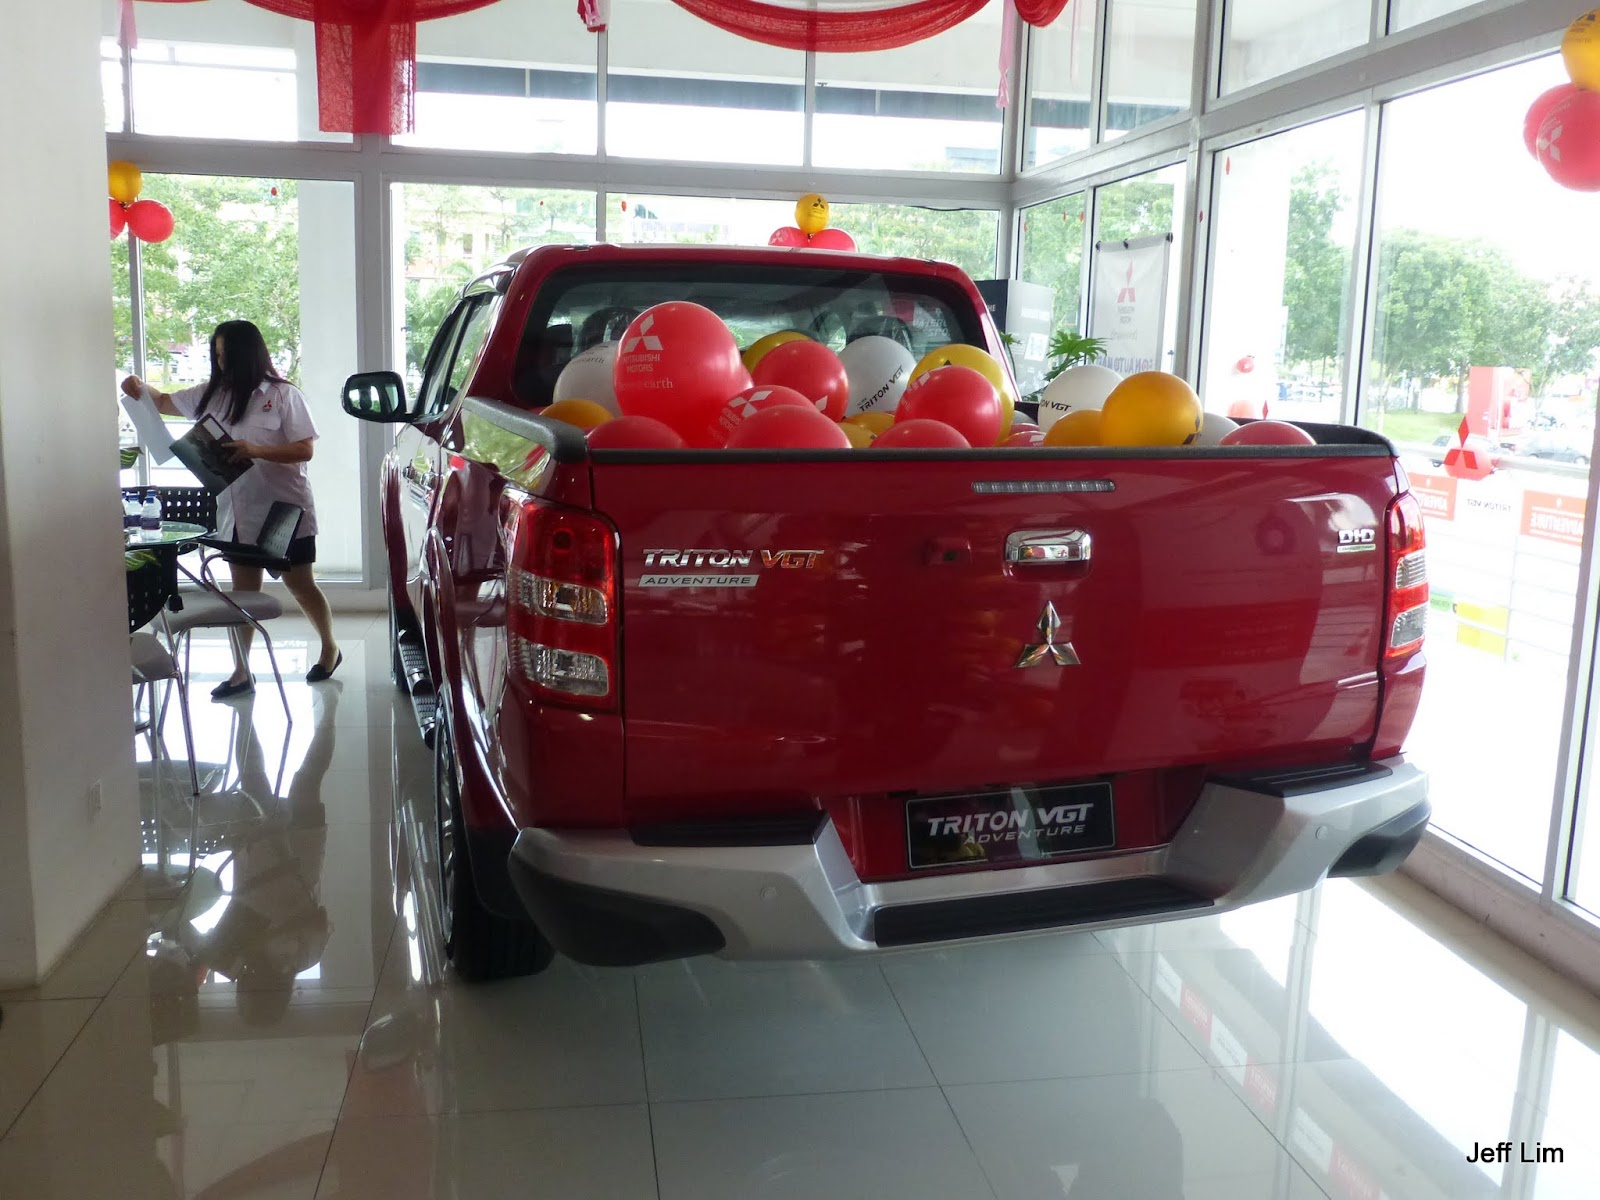 The model i m going to focus s triton adventure and triton vgt manual launched officially nationwide at 26 may 2015 this is the 2nd generation triton and